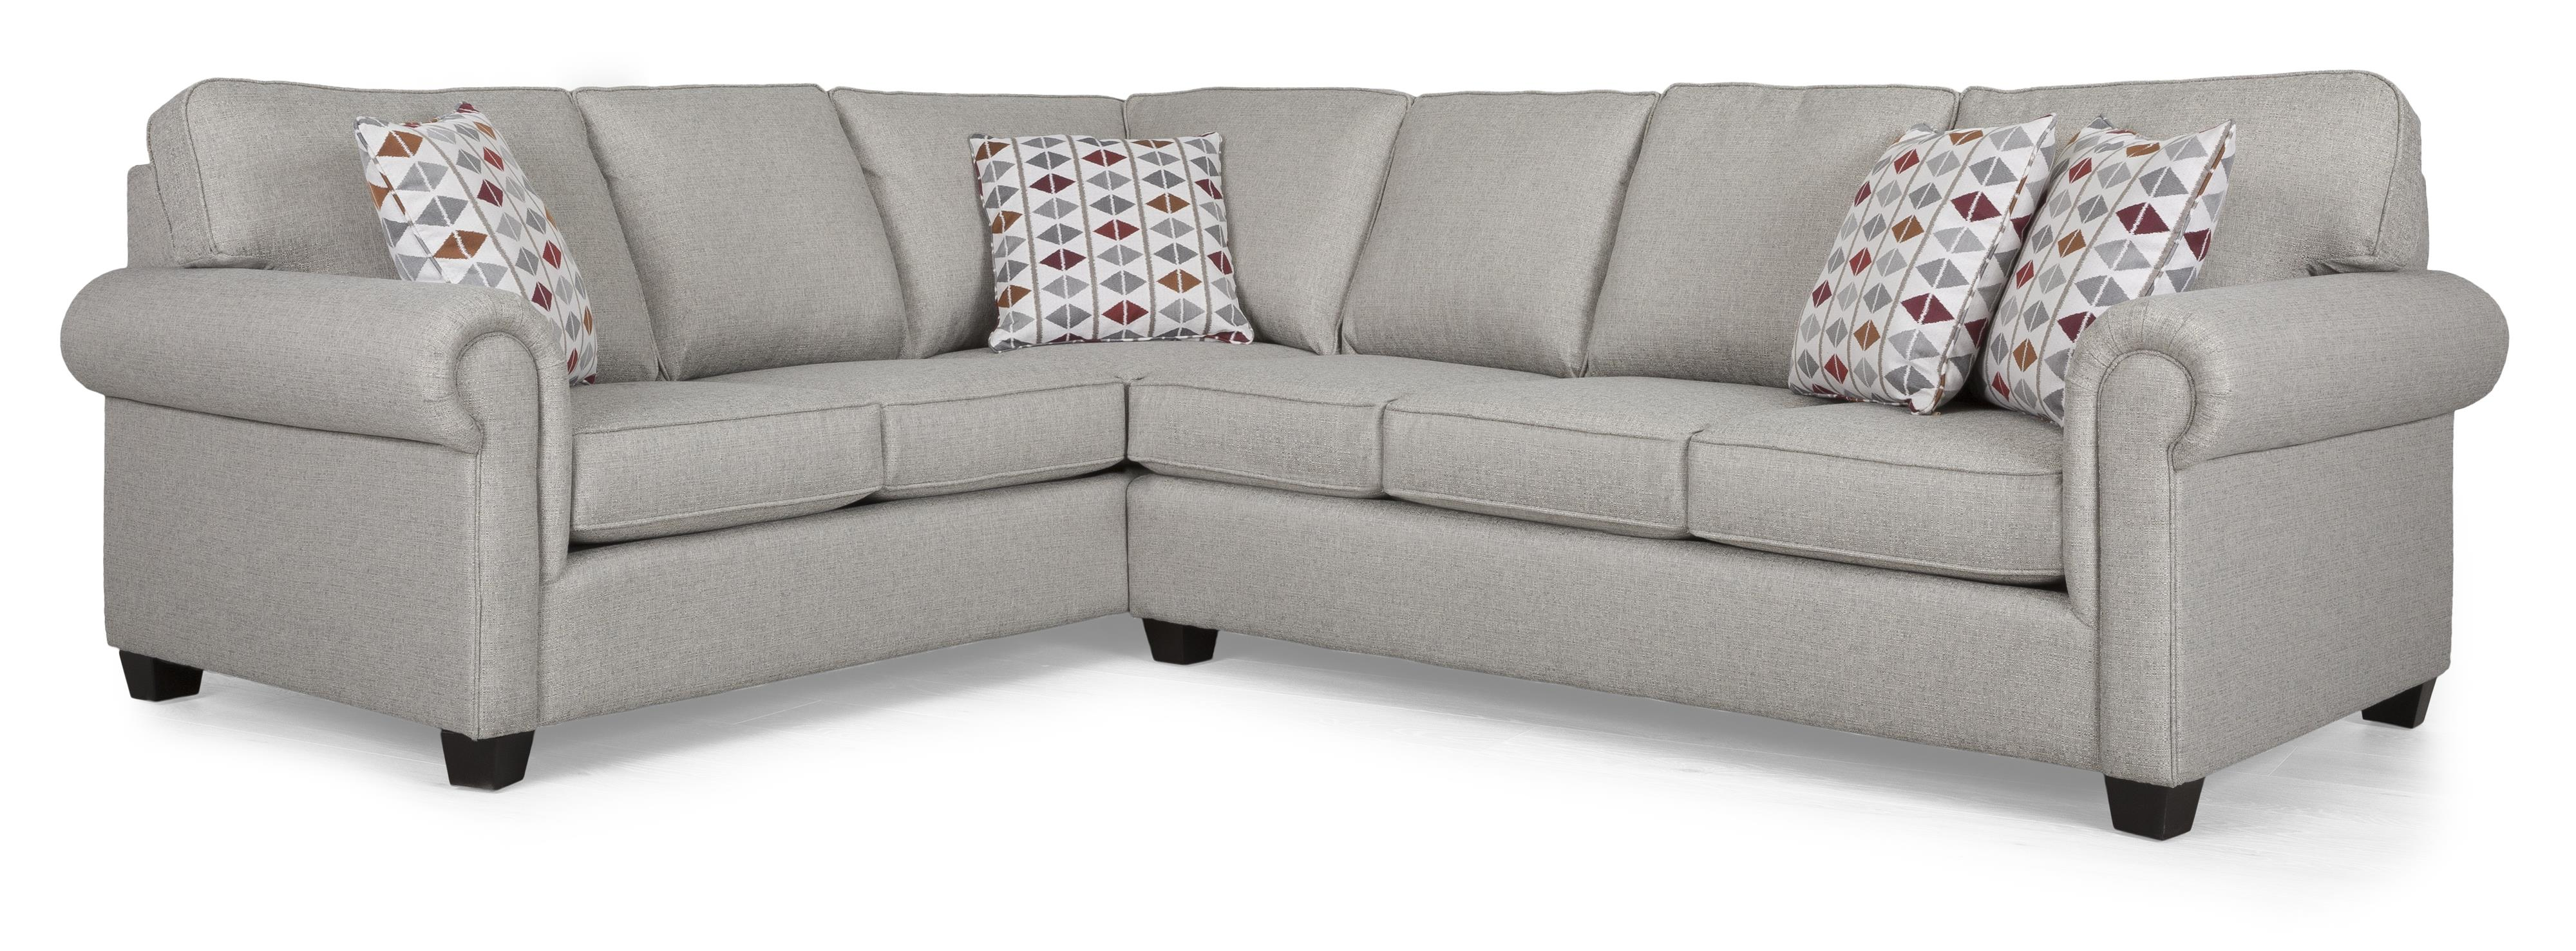 2006 Sectional Sectional Sofa Group by Decor-Rest at Rooms for Less